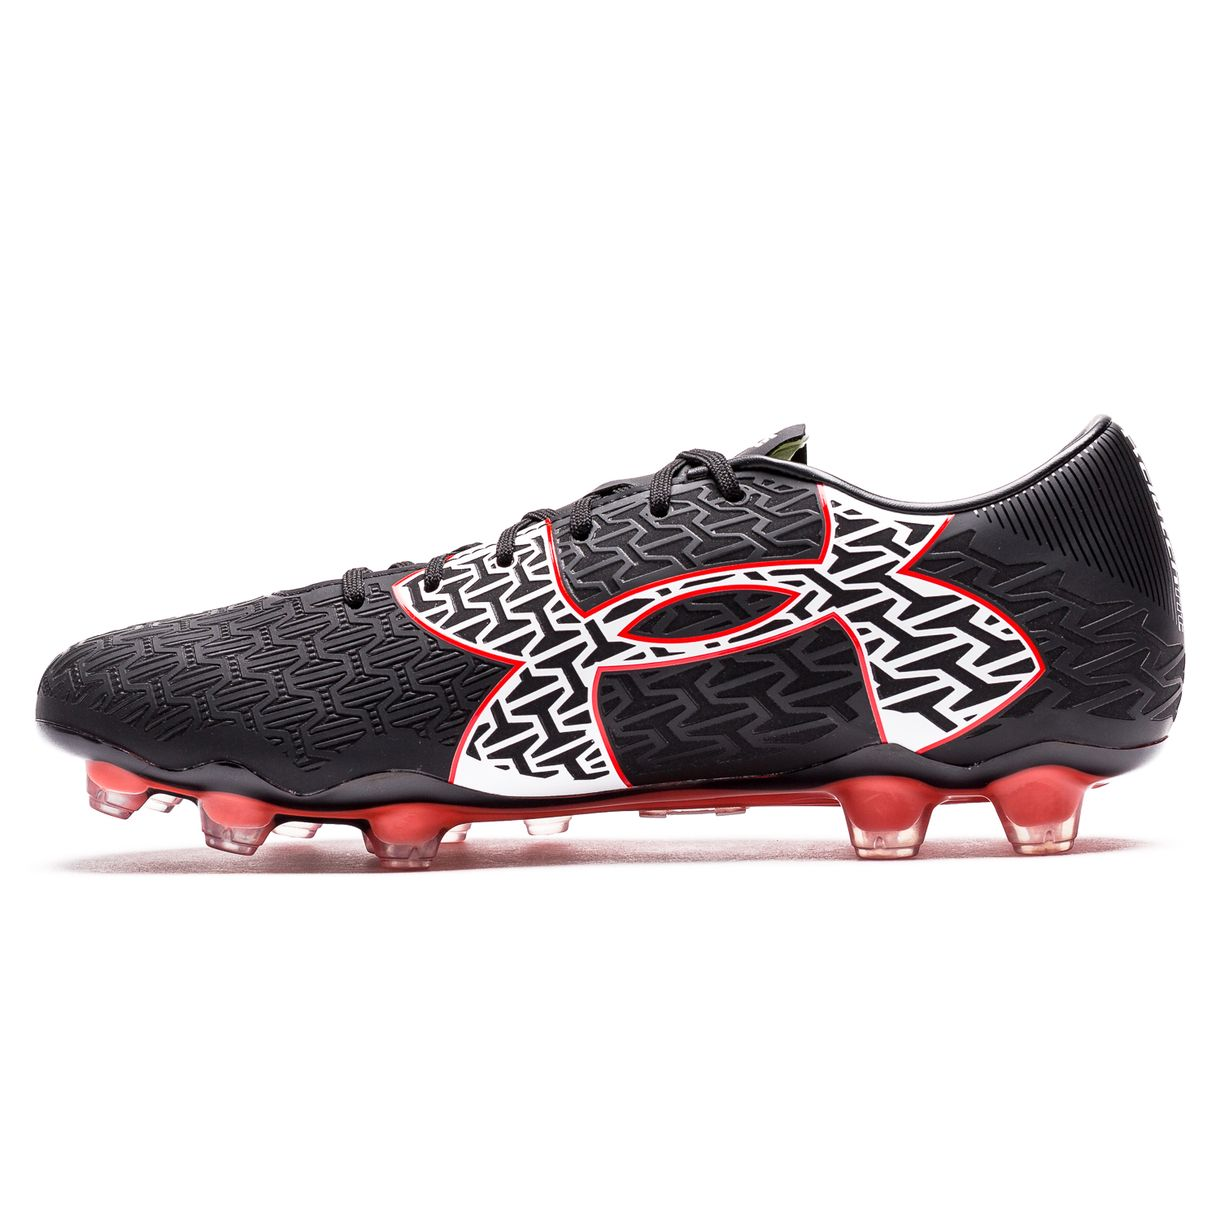 Black// Rocket Red// White Cleat Soccer Shoes Under Armour Clutchfit Force 2.0 FG